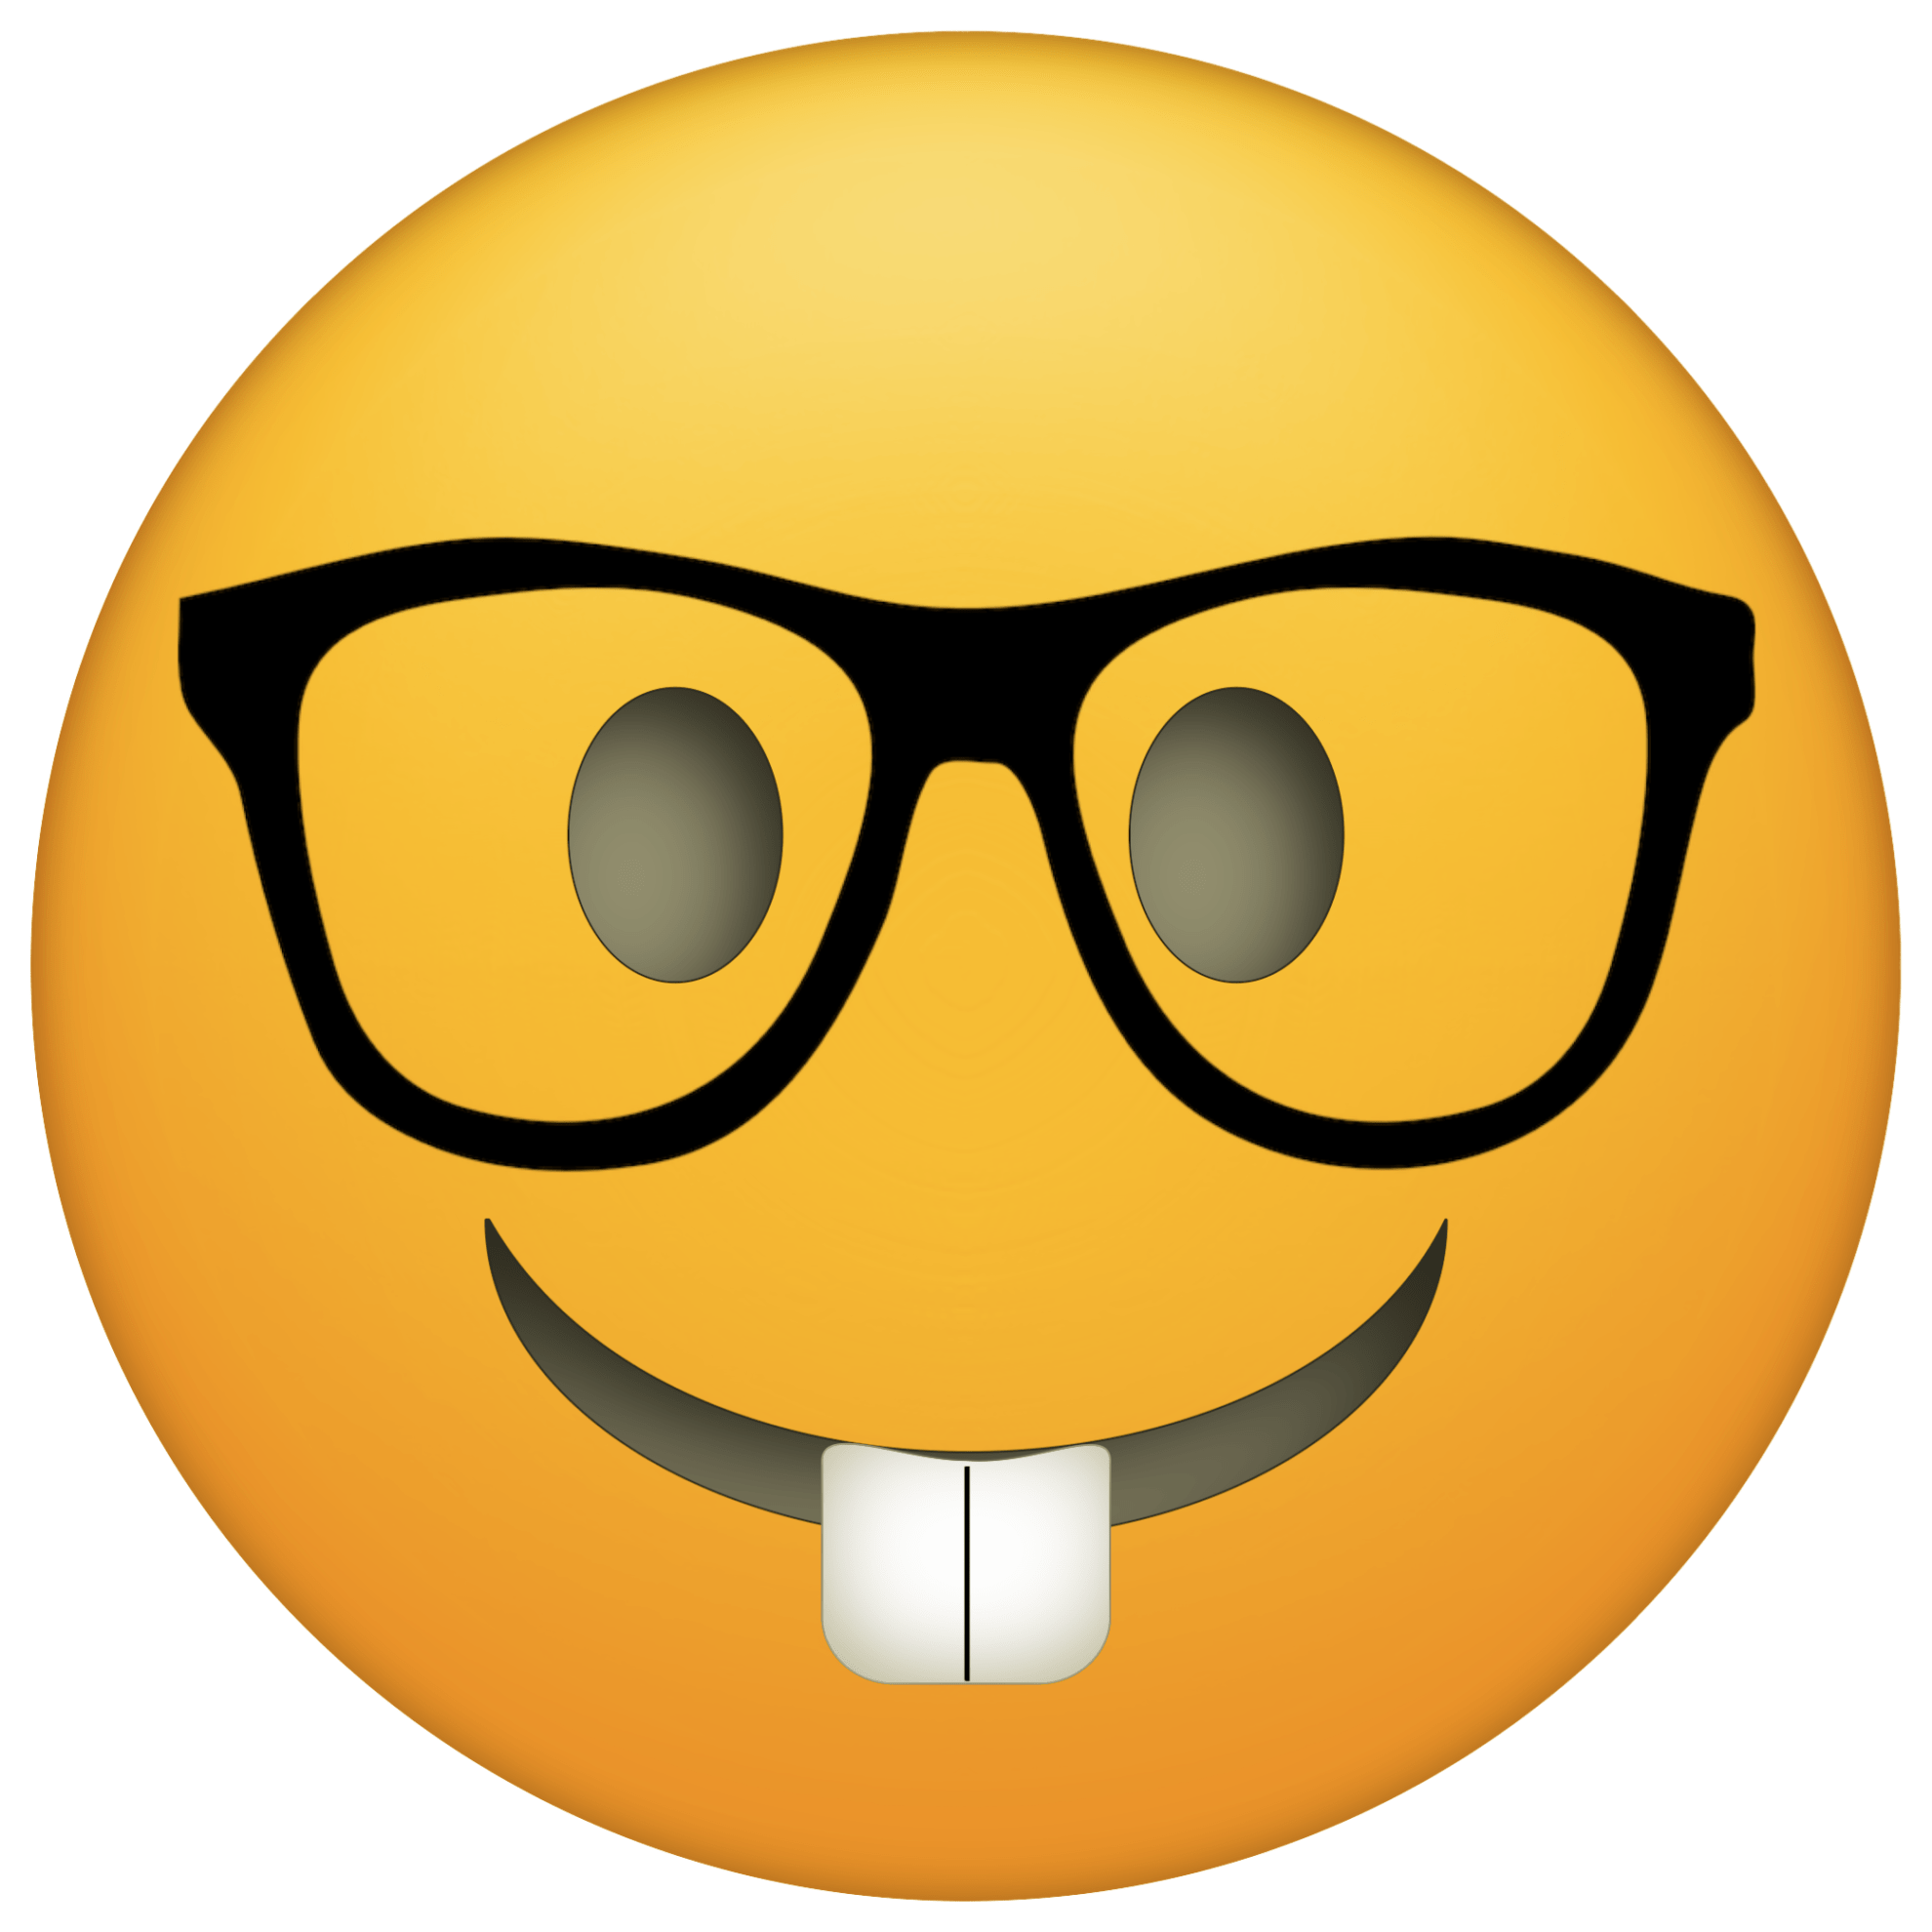 It's just an image of Zany Printable Emoji Faces